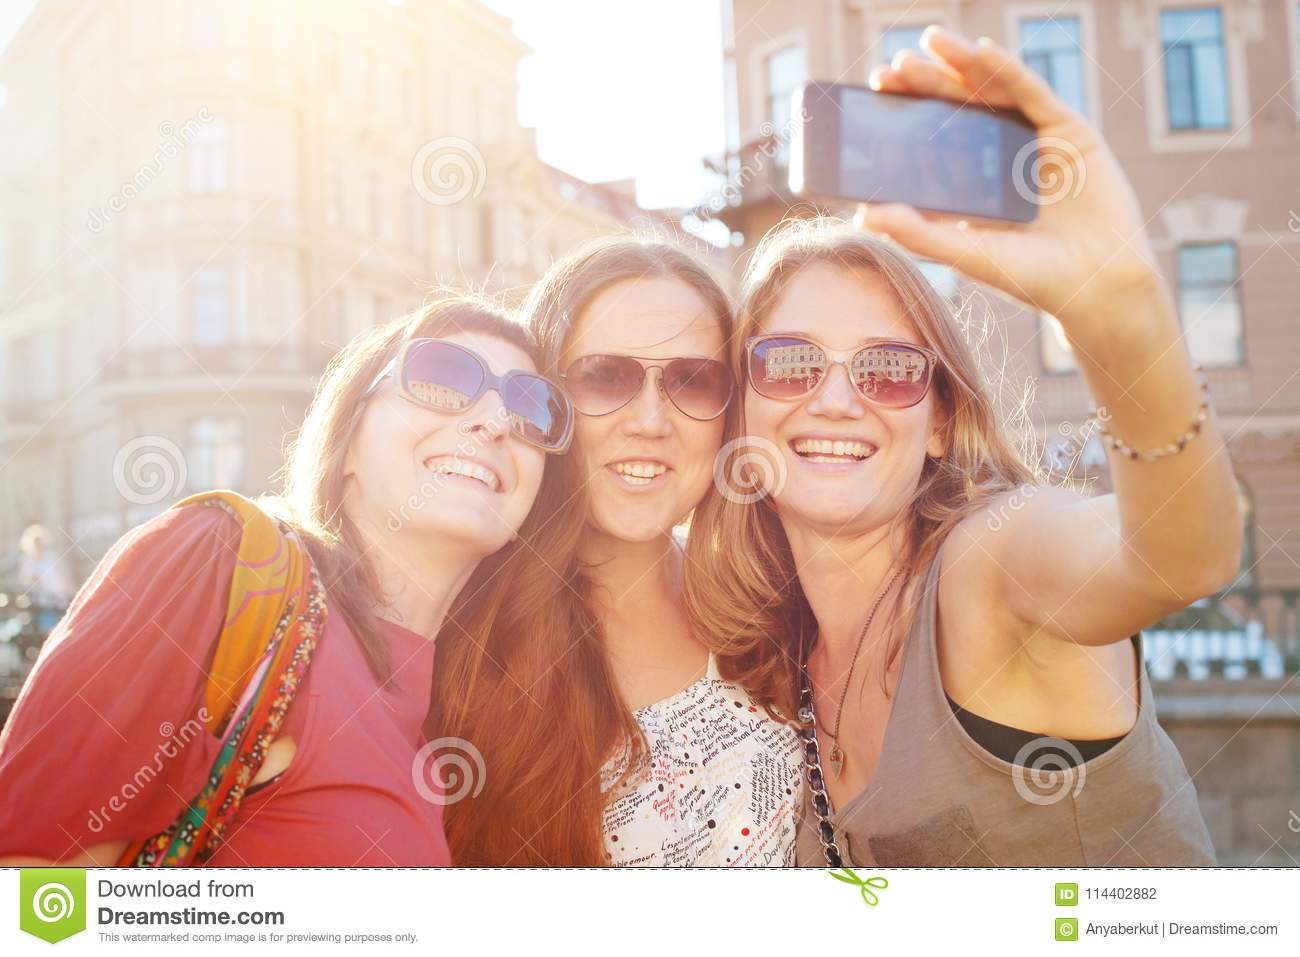 Friends taking selfy, students travel to Europe, girls selfie